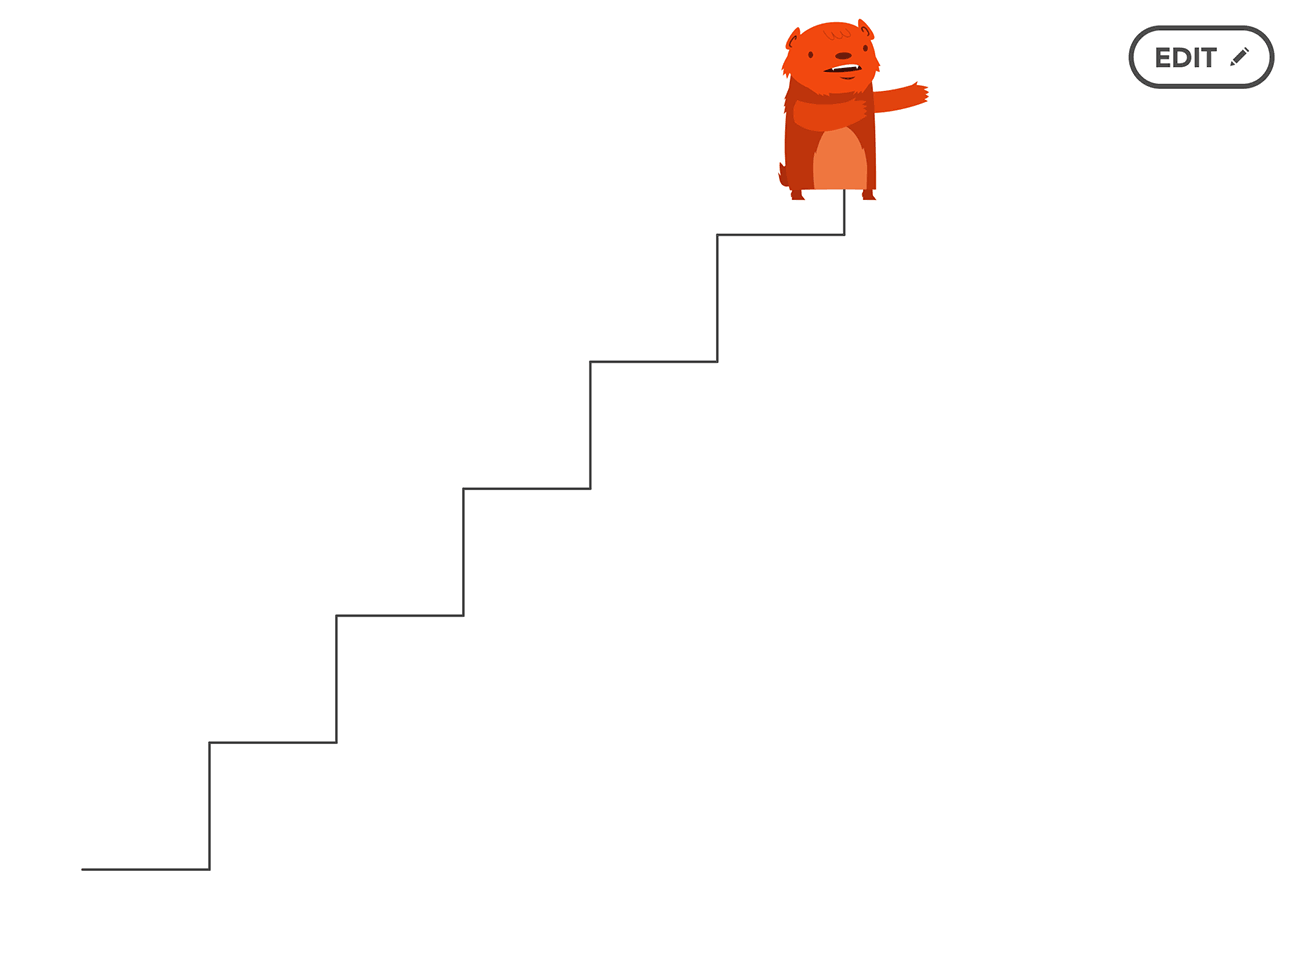 The end result. Our bear can now draw an entire staircase!